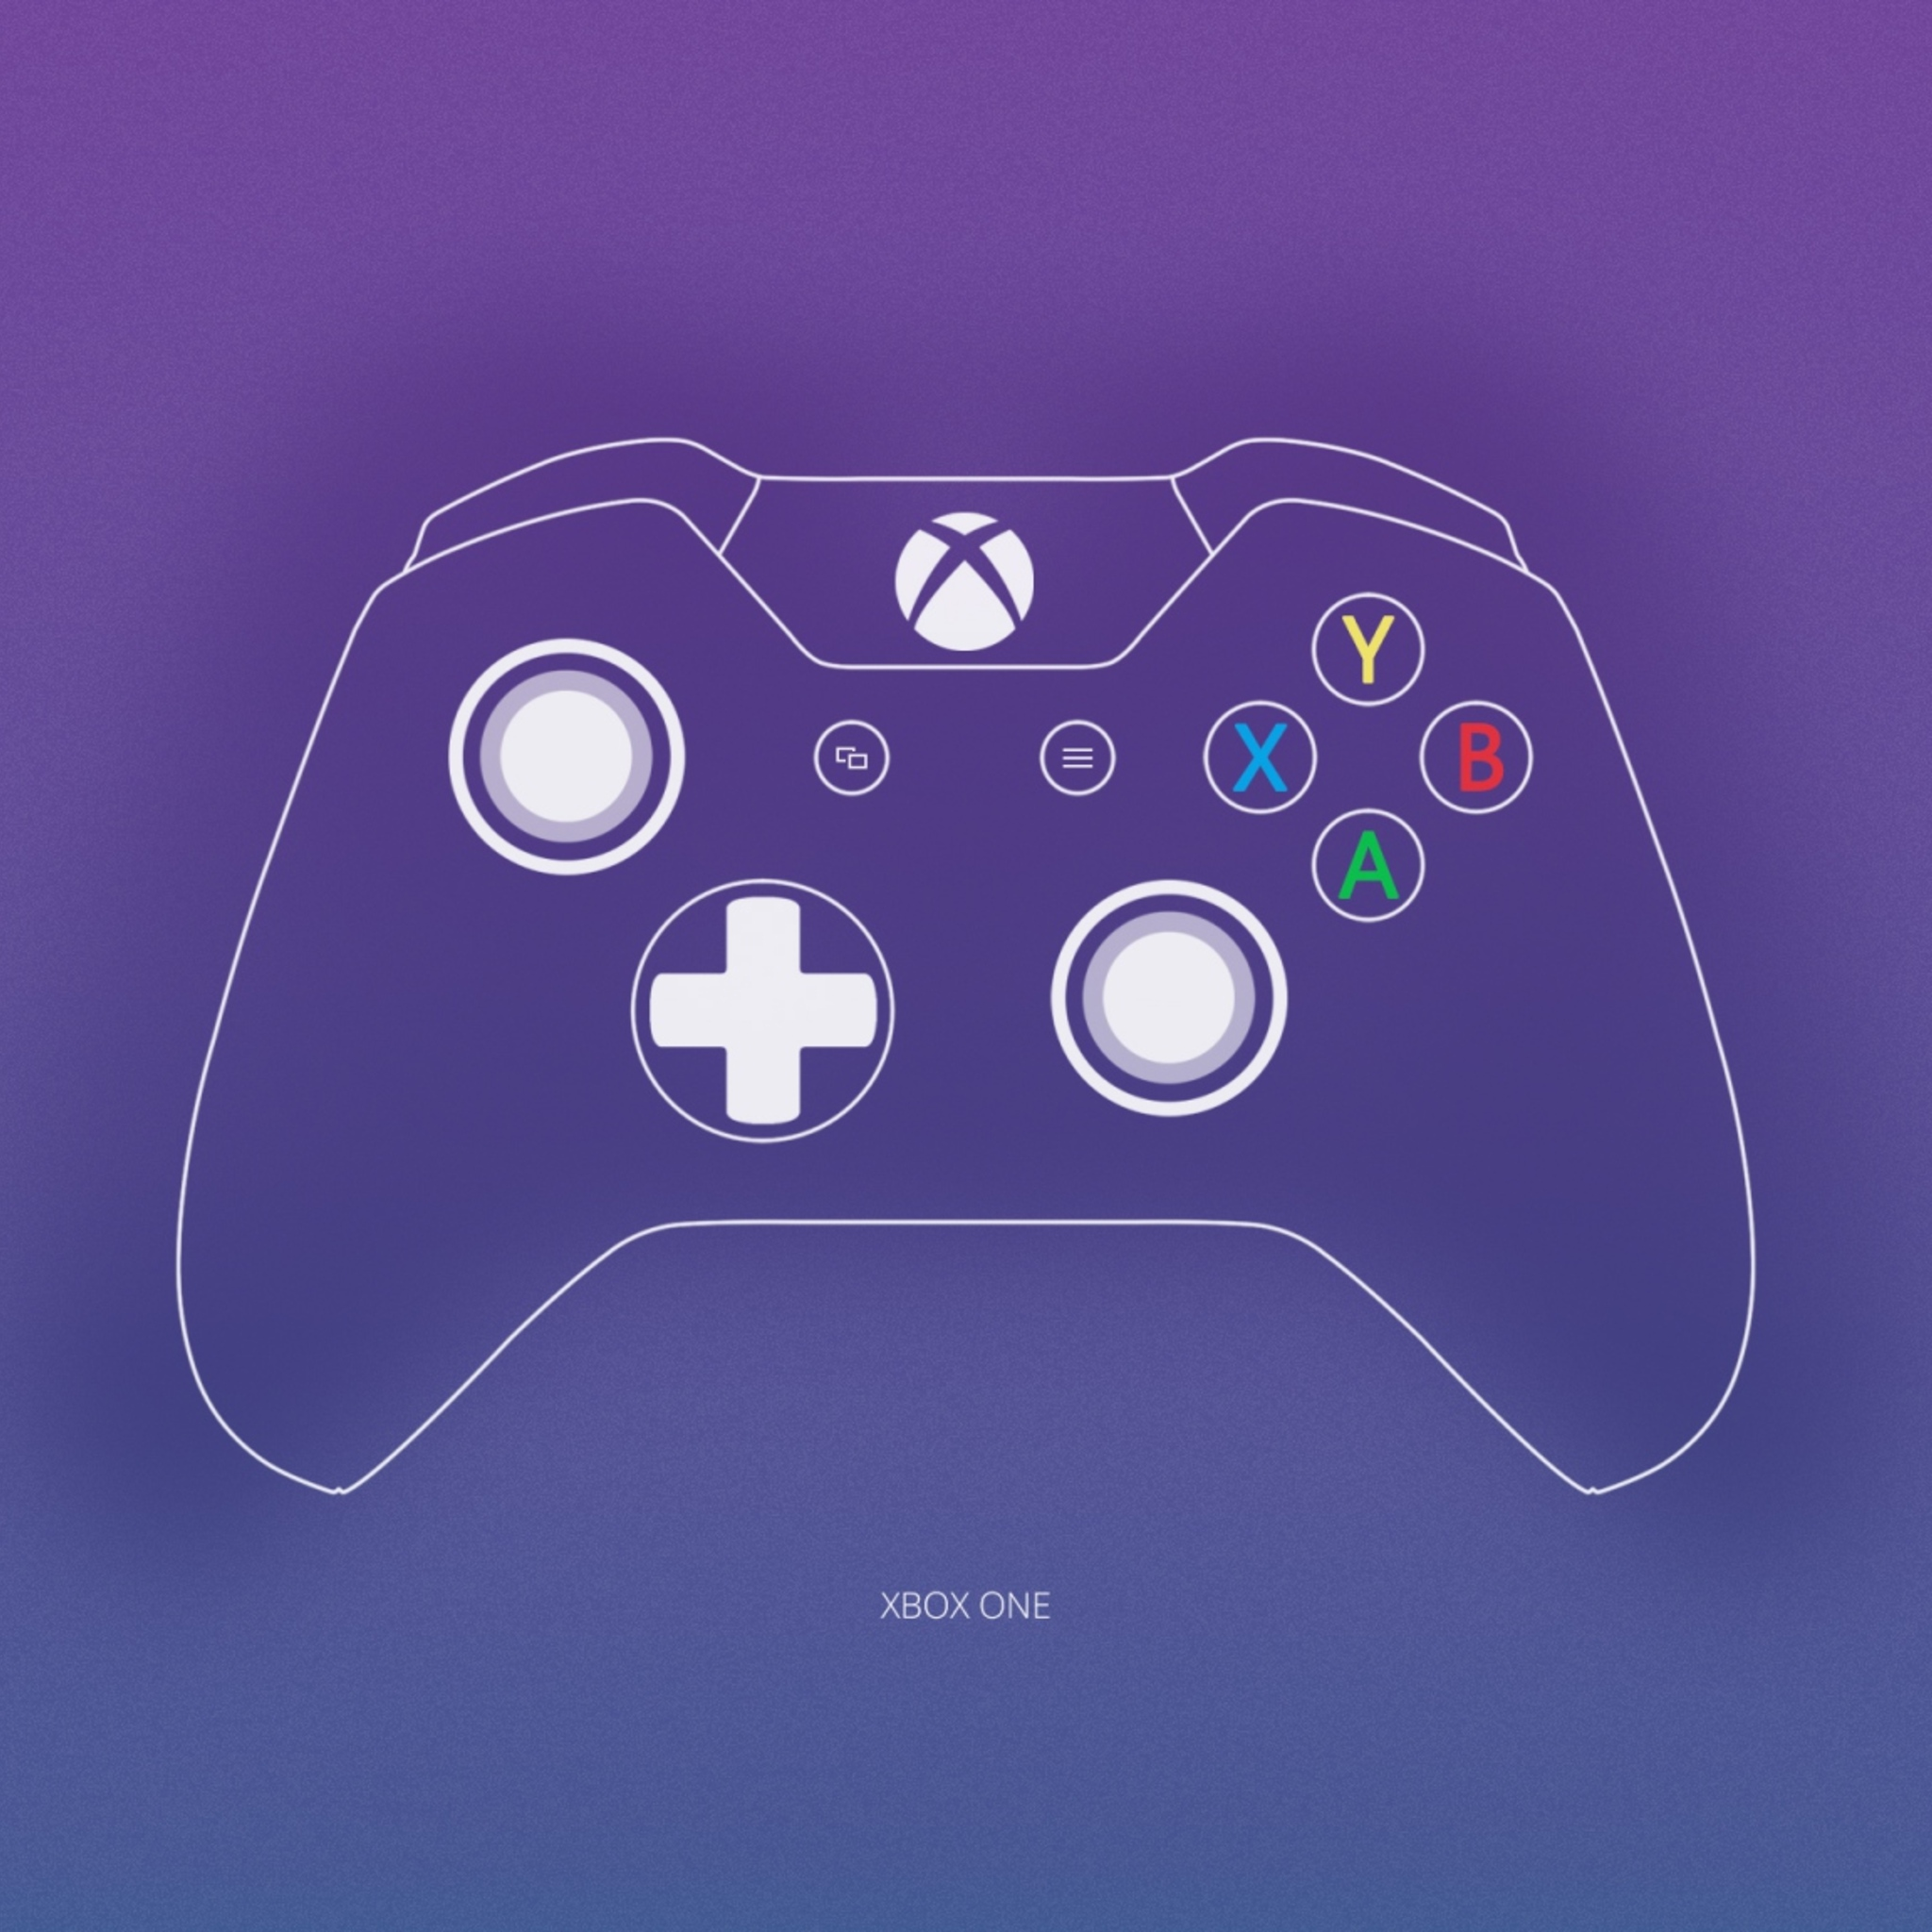 2048x2048 Xbox One Controller Minimalism Ipad Air Hd 4k Wallpapers Images Backgrounds Photos And Pictures